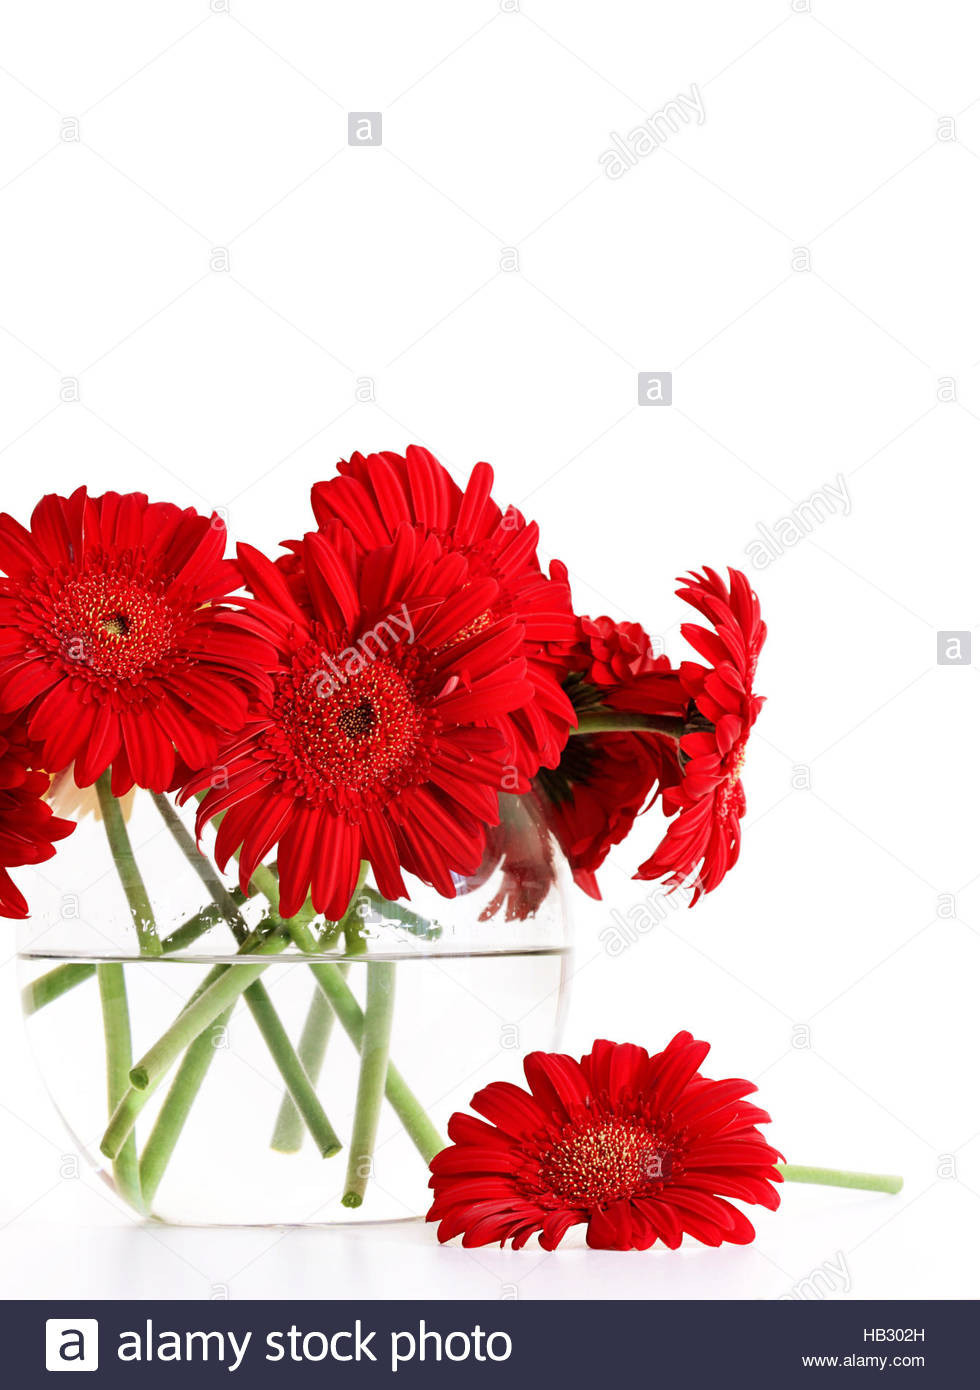 marquis by waterford versa vase of vases artificial plants collection within red glass vase pics closeup od red gerber daisies in glass vase stock of red glass vase